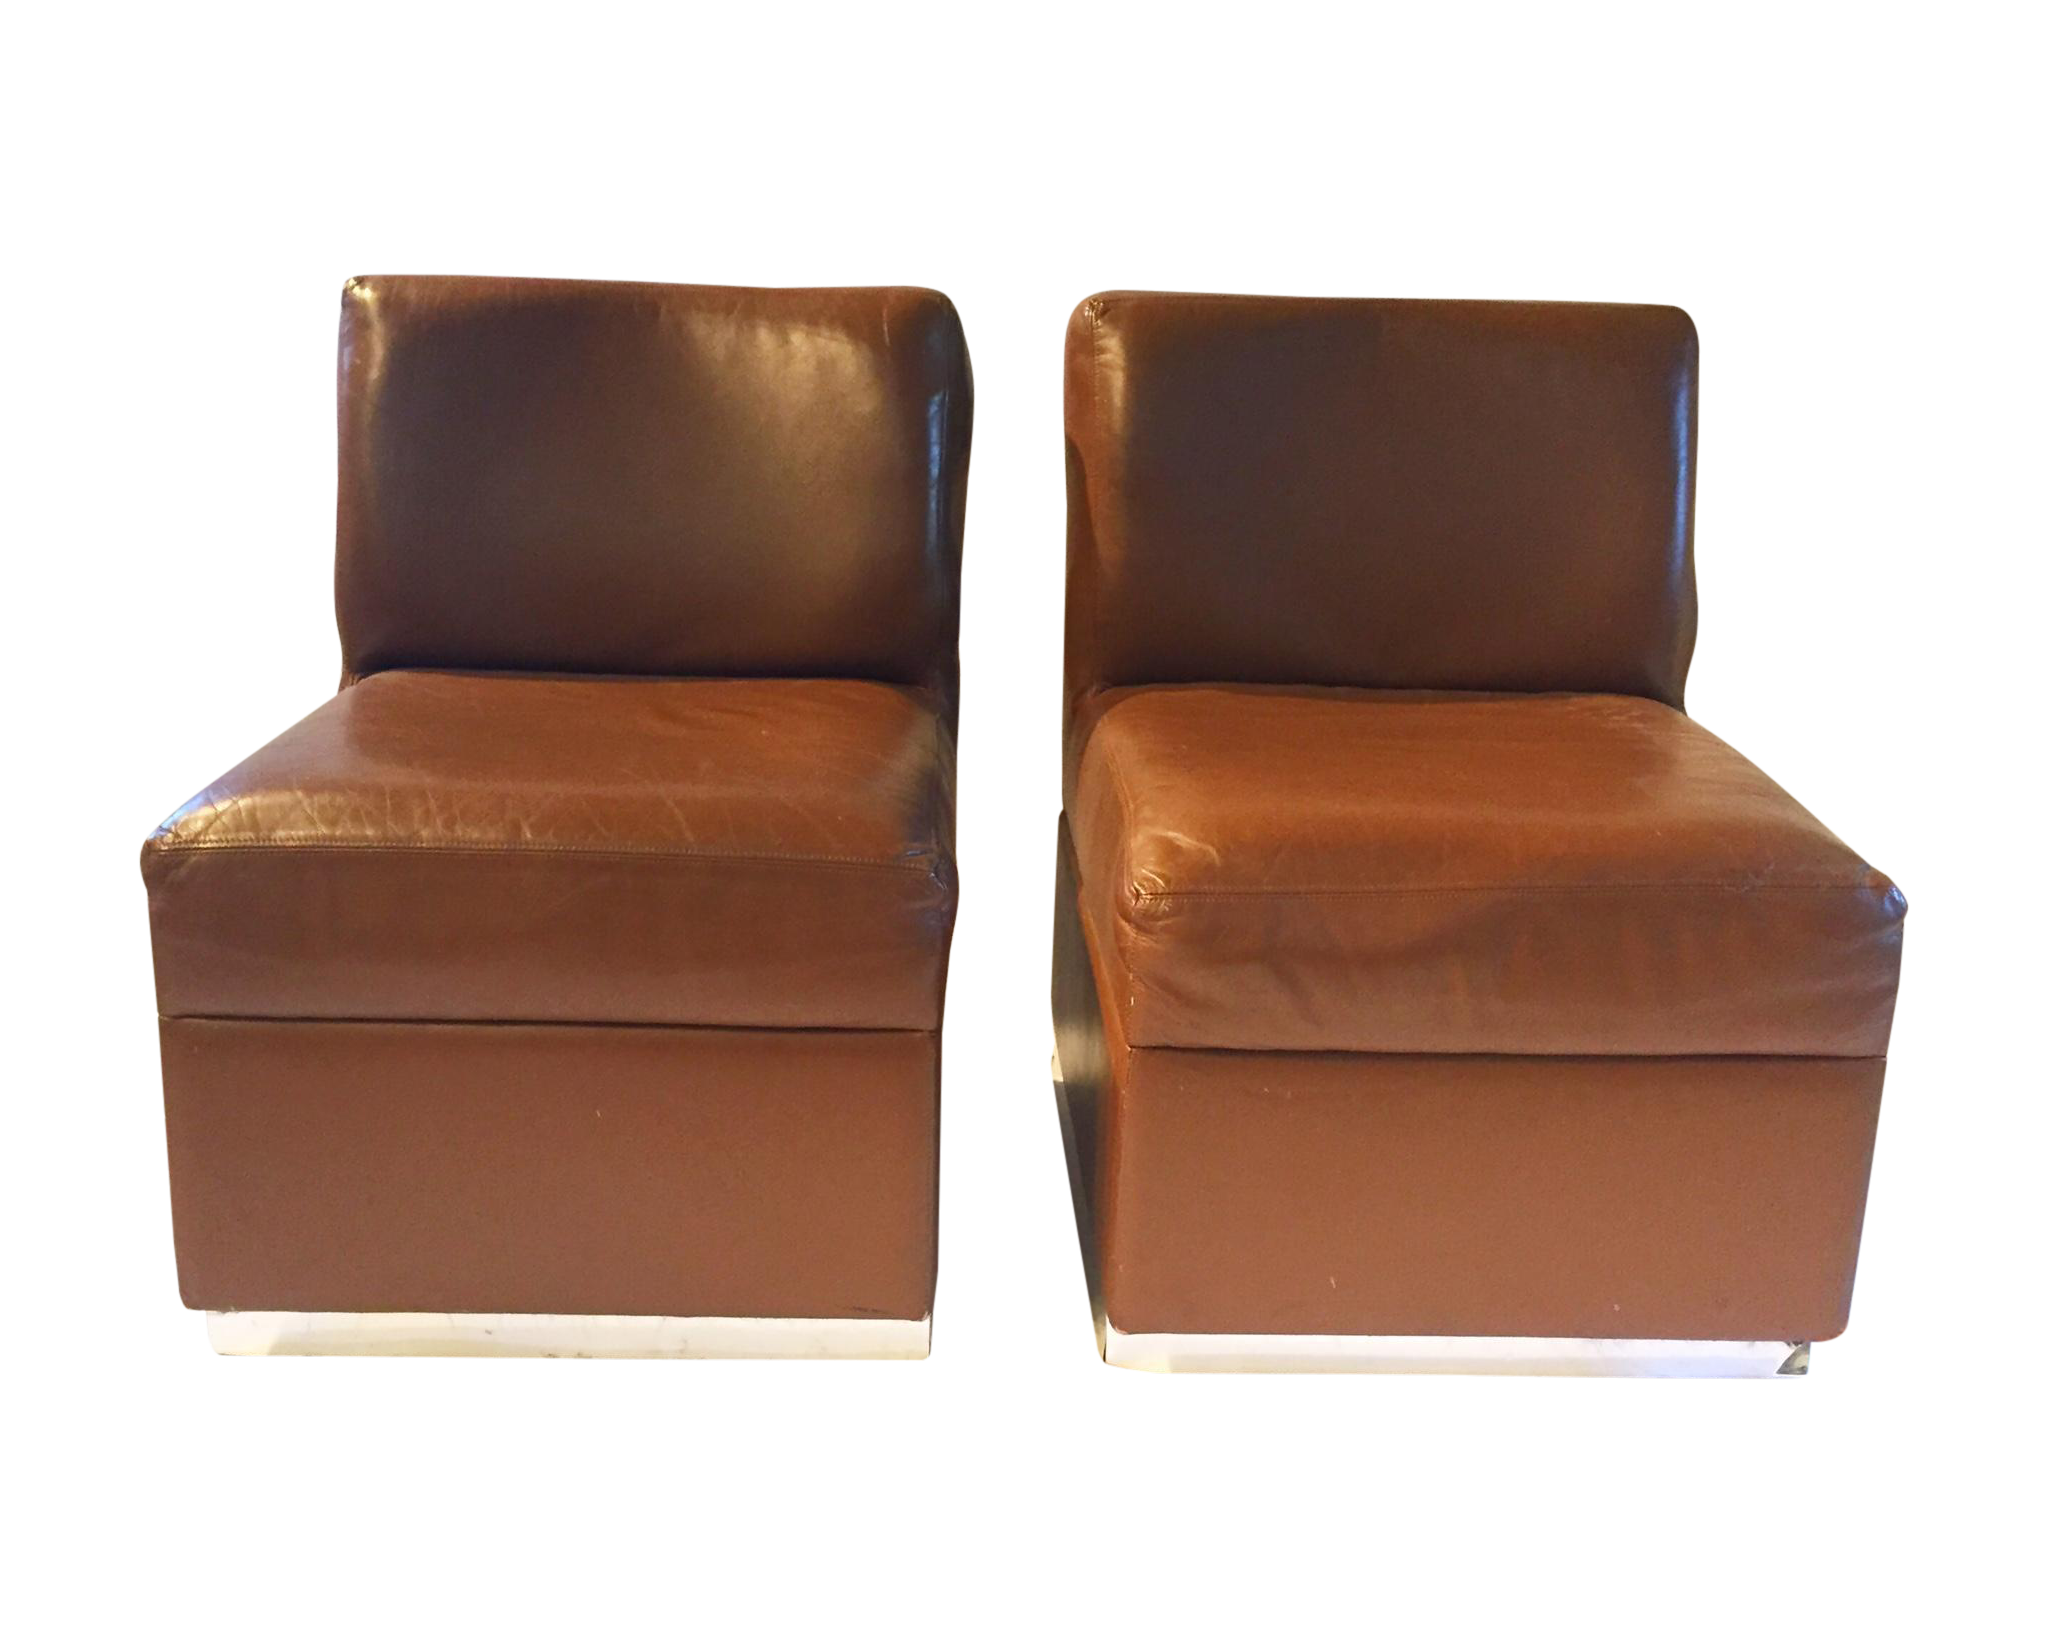 1970s Gucci Leather Slipper Chairs - a Pair | Chairish